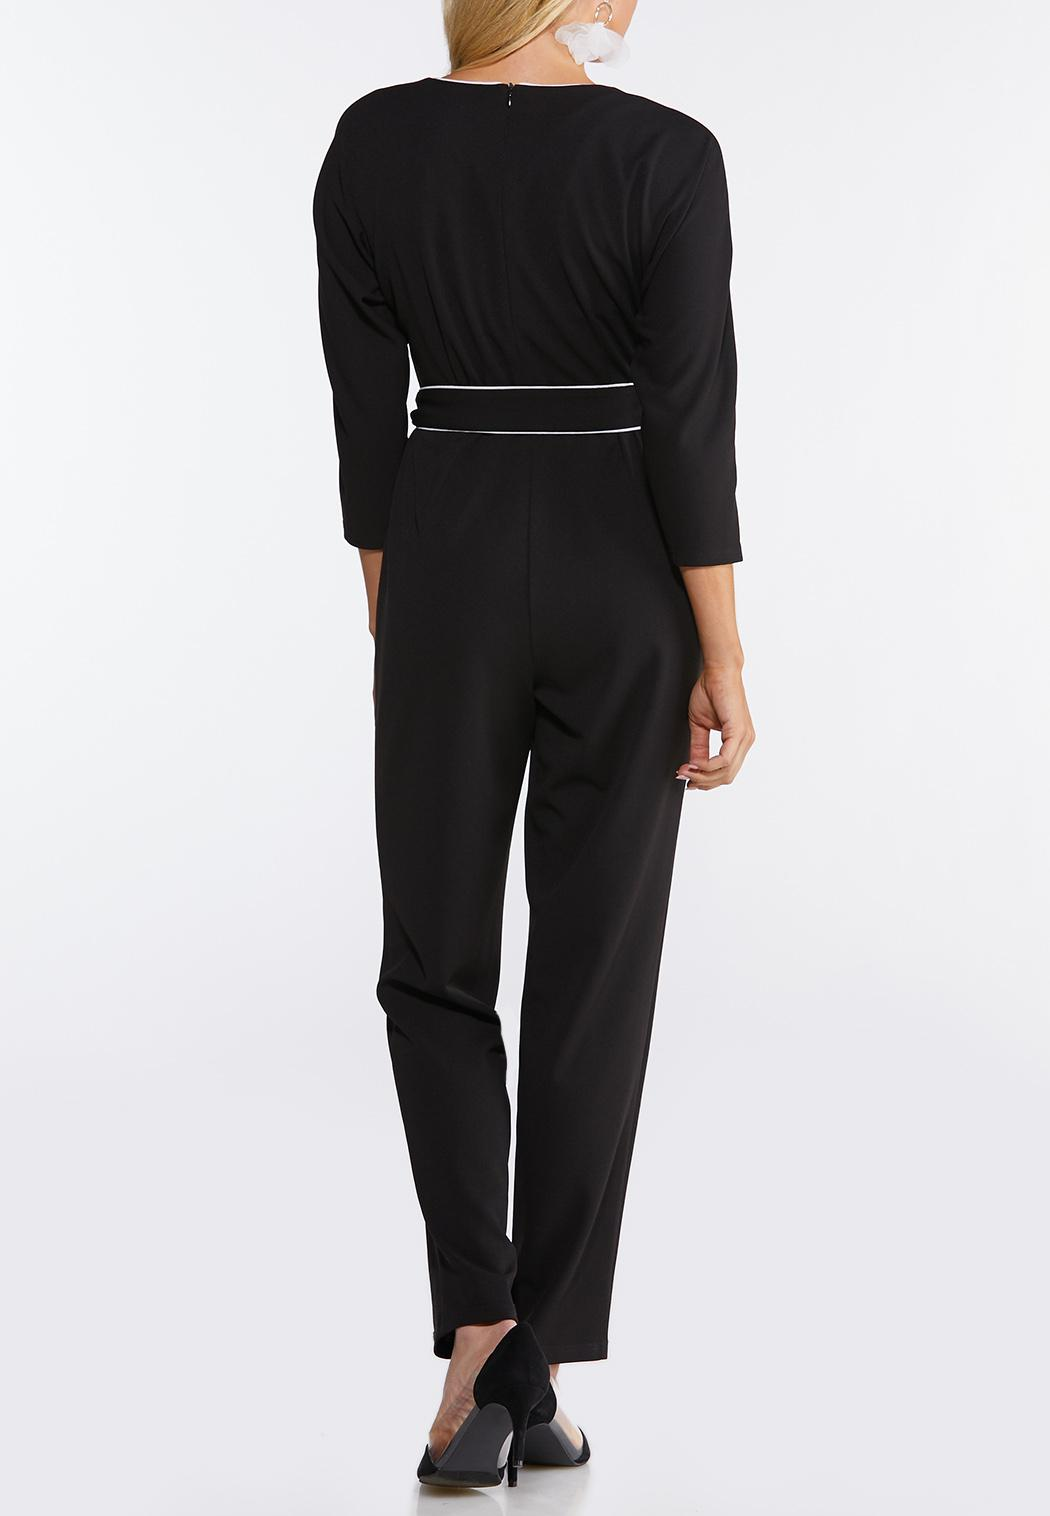 Plus Size Black And White Jumpsuit (Item #44090056)